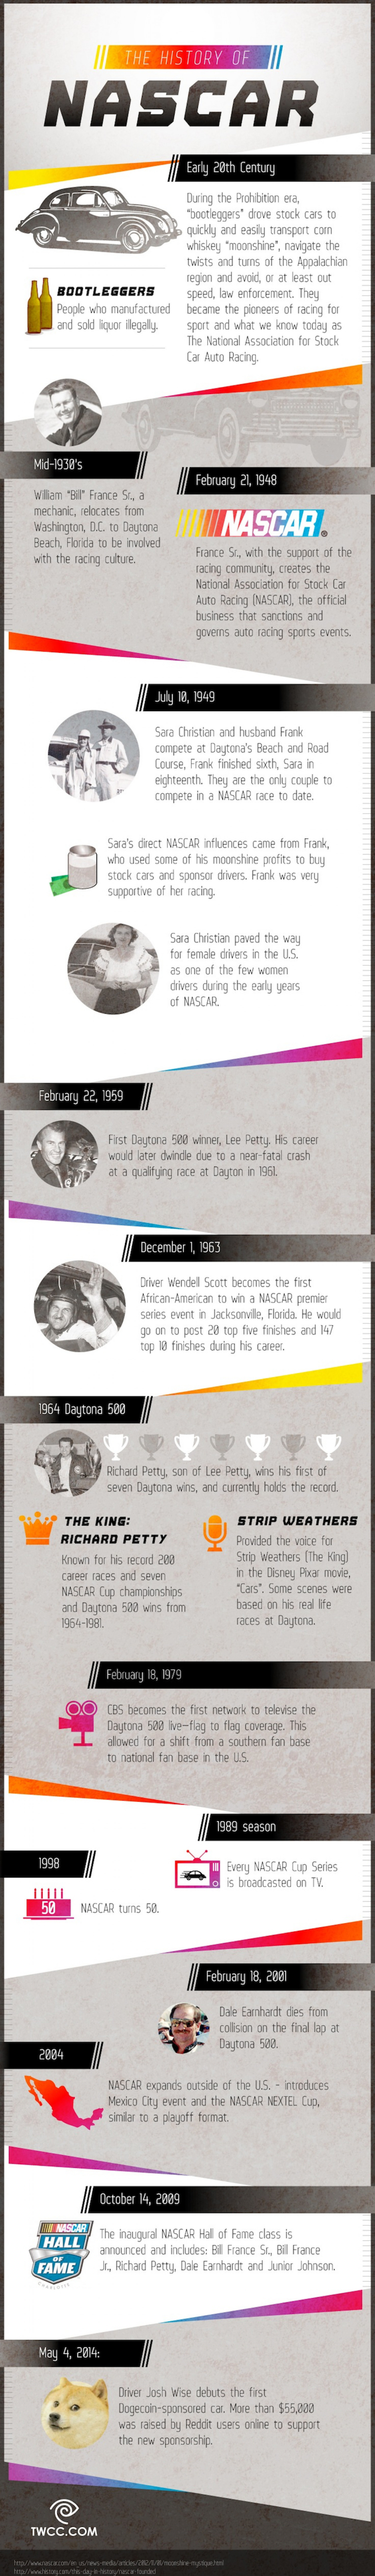 The History of NASCAR Infographic